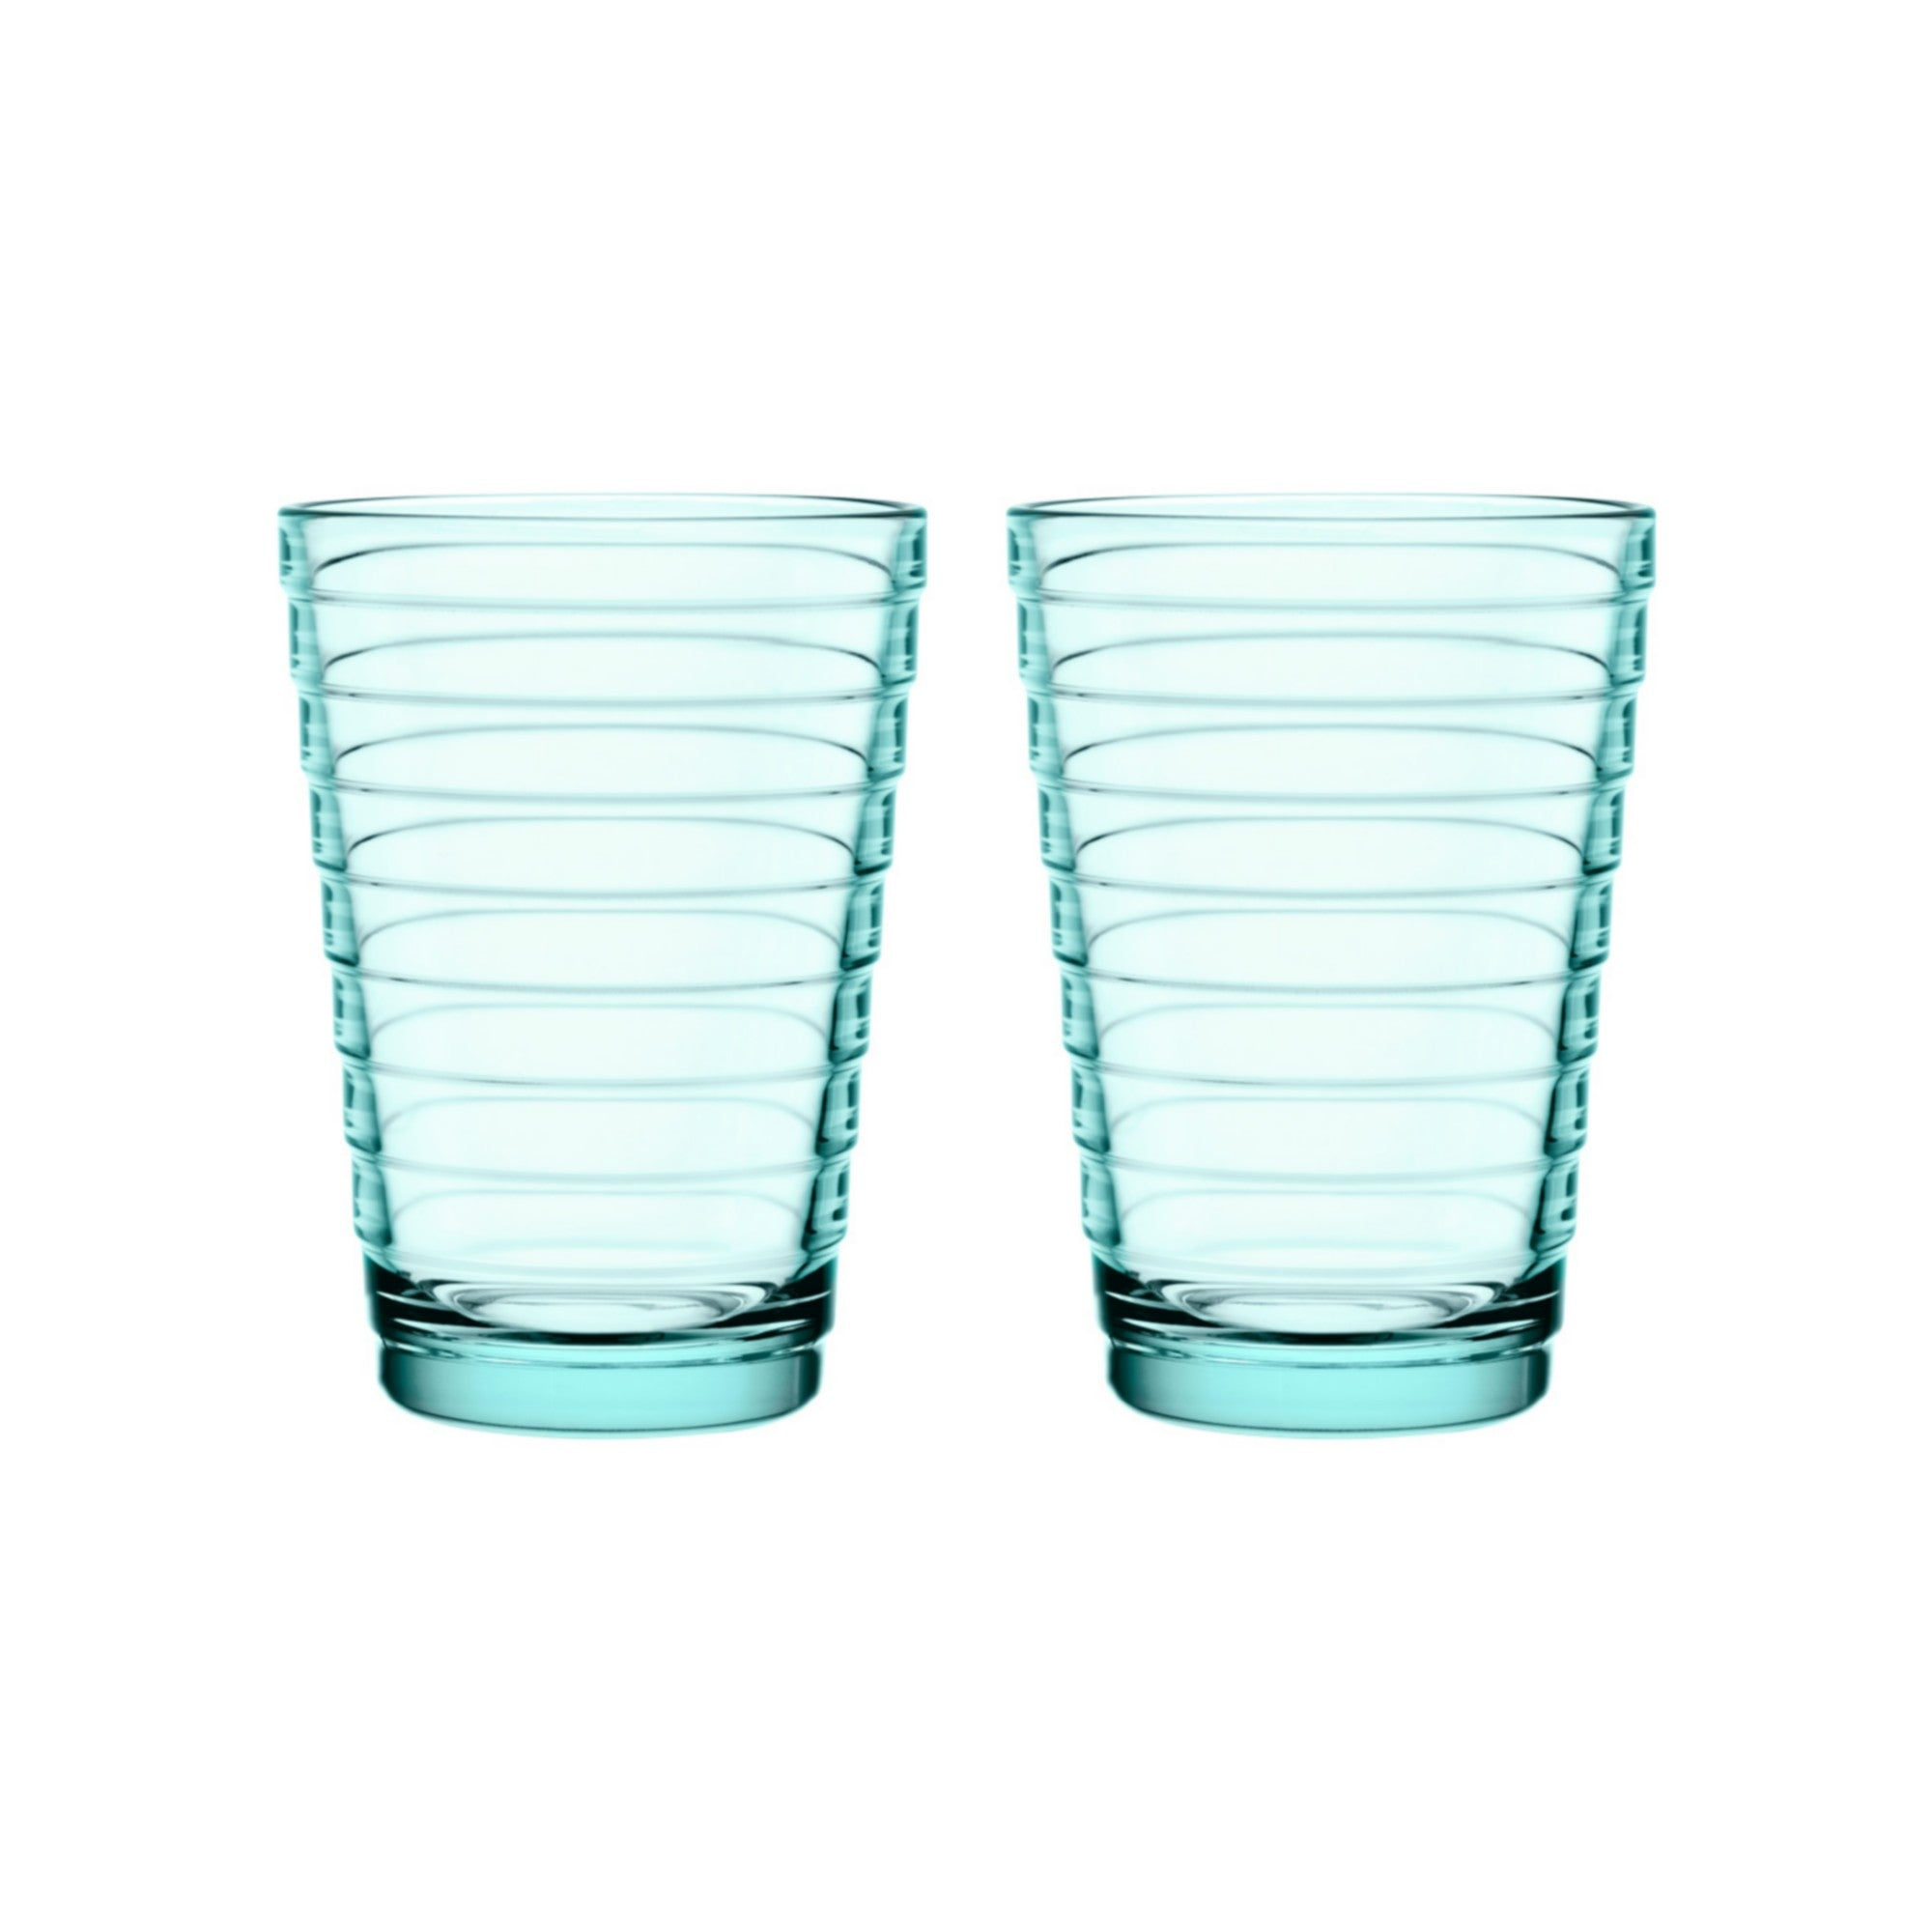 Aino Aalto tumbler 33 cl boxed set of two 11oz large